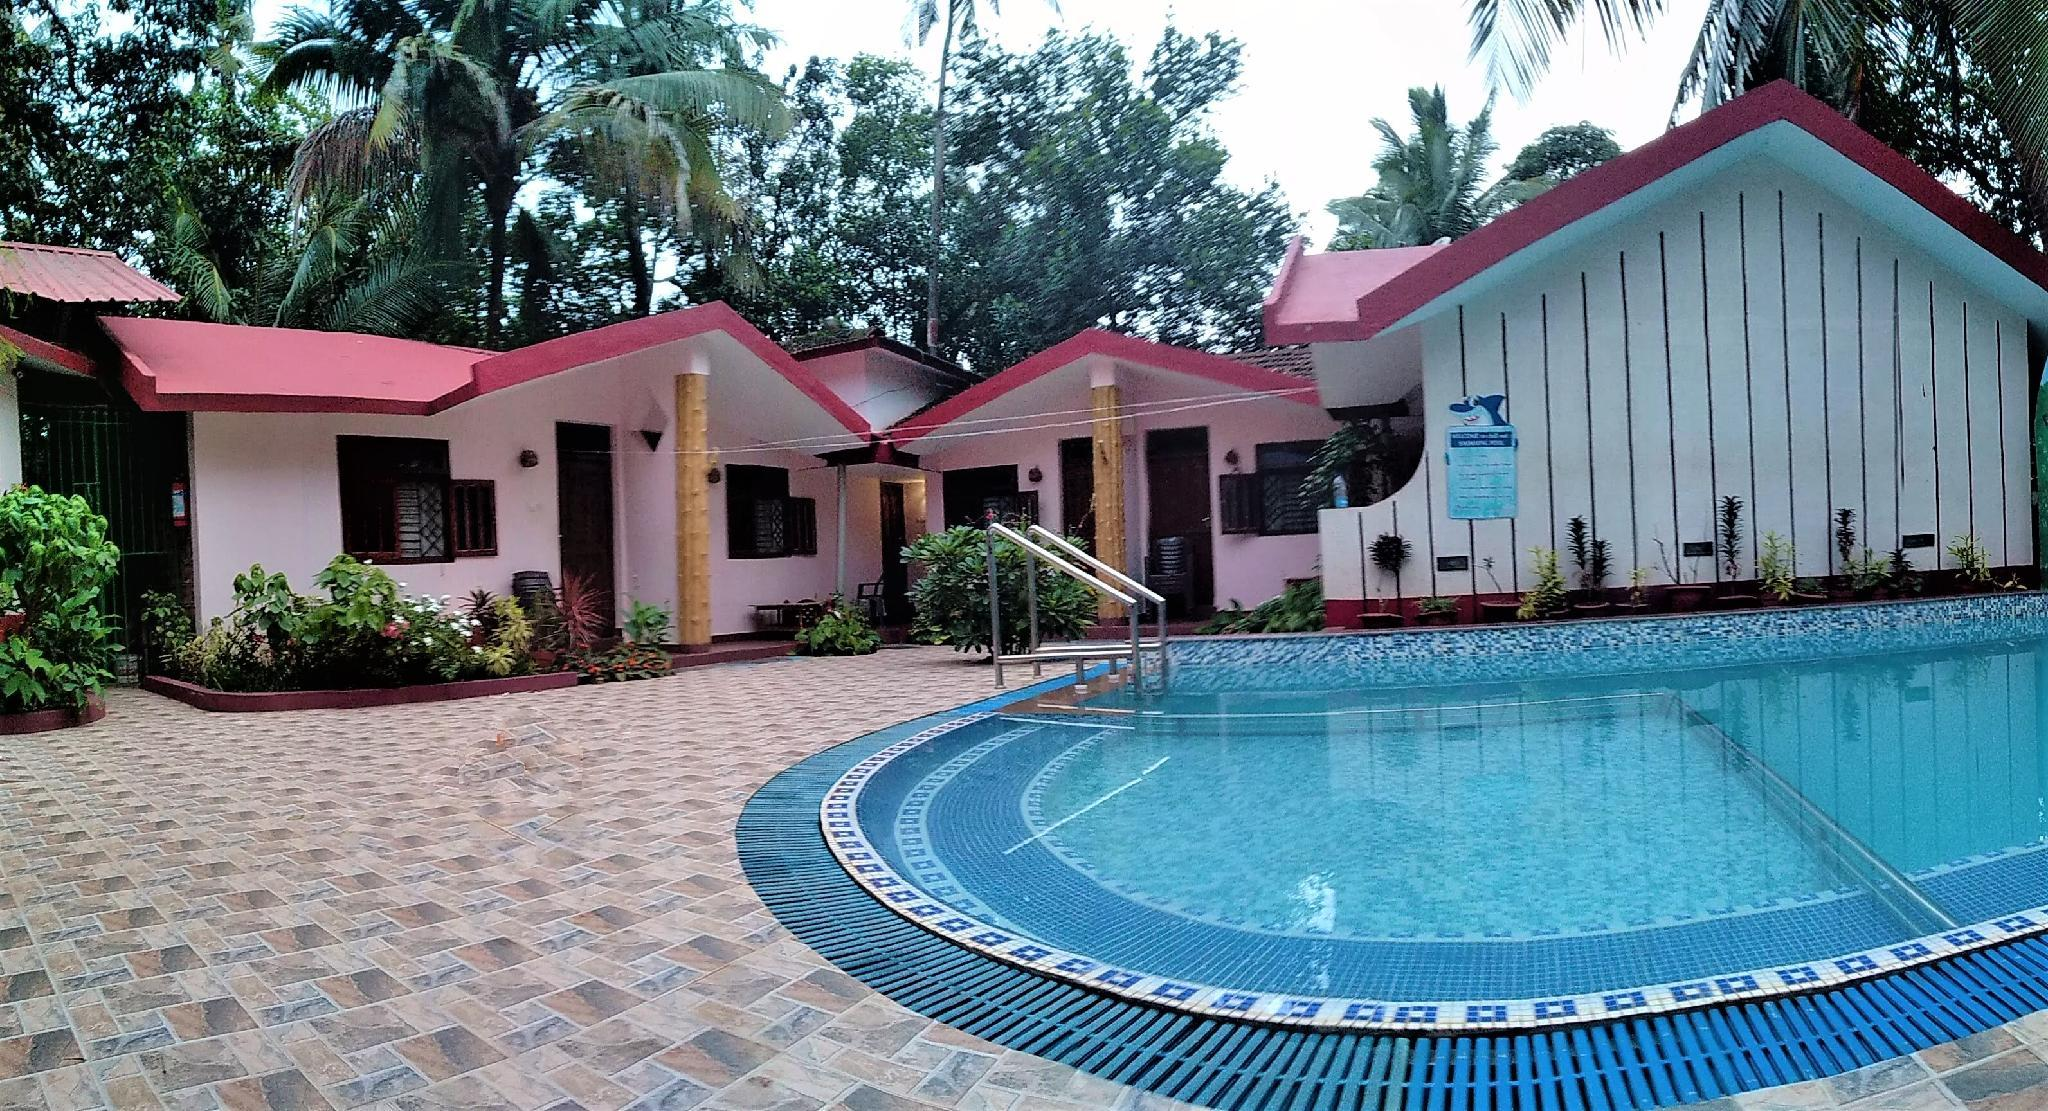 Hotel Boons Ark Resort With Swimming Pool